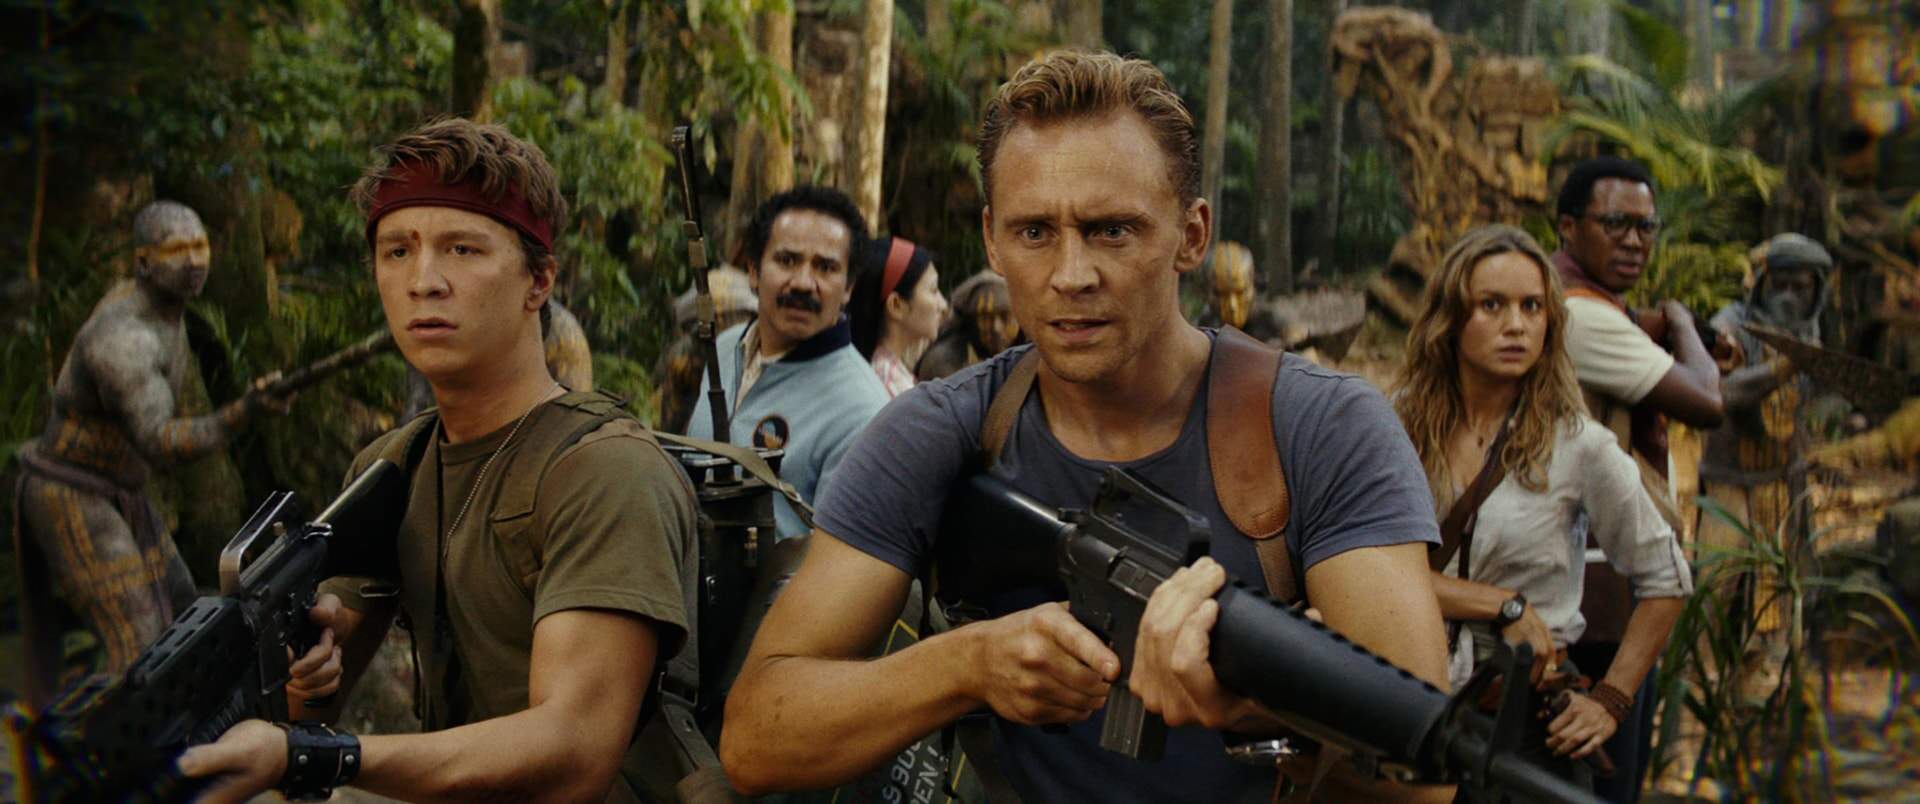 """THOMAS MANN as Slivko, JOHN ORTIZ as Victor, TOM HIDDLESTON as James Conrad and BRIE LARSON as Mason Weaver in Warner Bros. Pictures', Legendary Pictures' and Tencent Pictures' action adventure """"KONG: SKULL ISLAND,"""" a Warner Bros. Pictures release."""